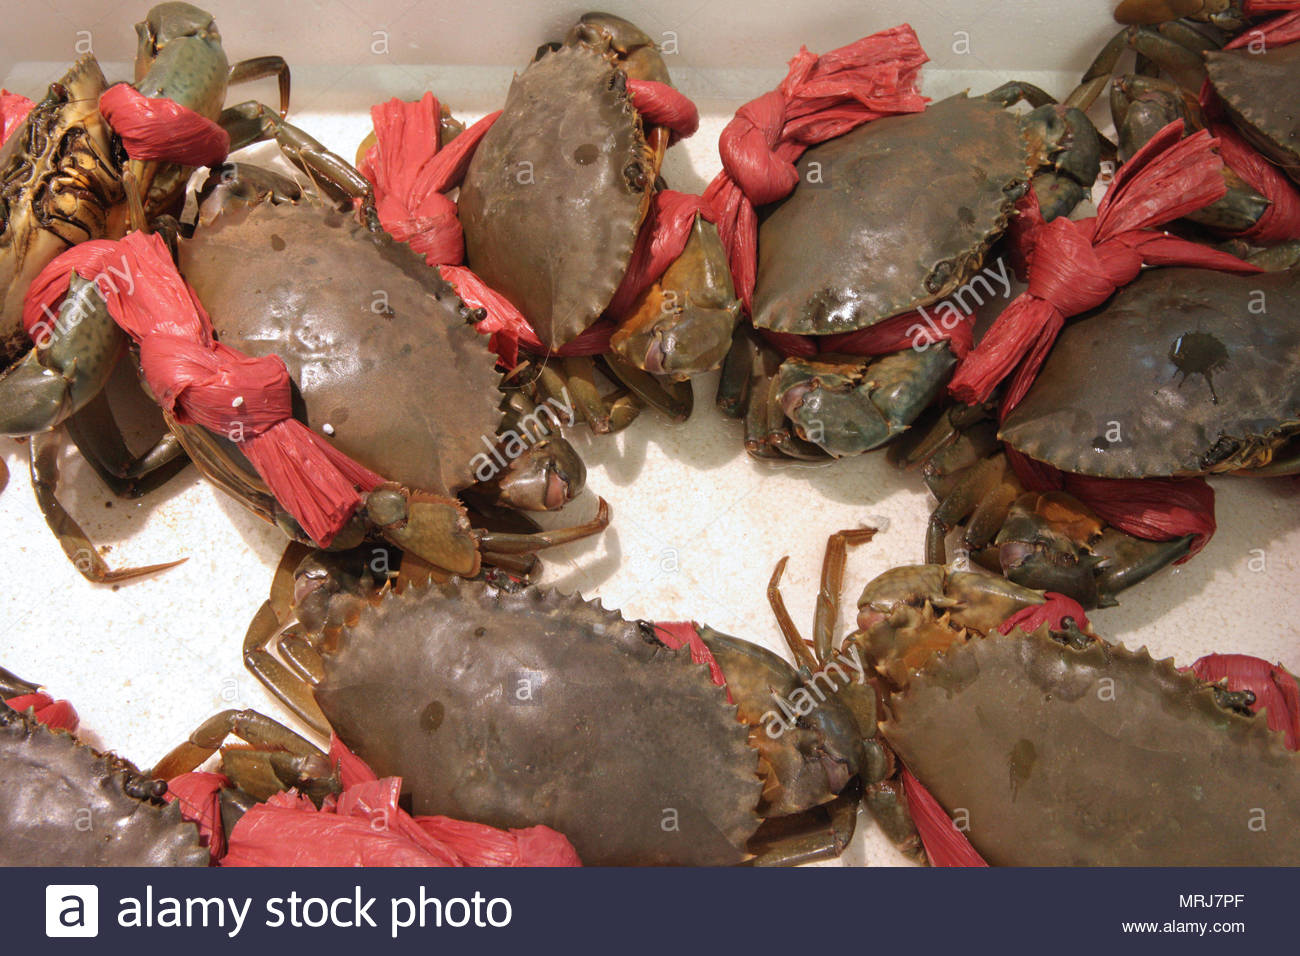 Live mud crabs at a Chinese seafood market in Toronto, Ontario, Canada. - Stock Image